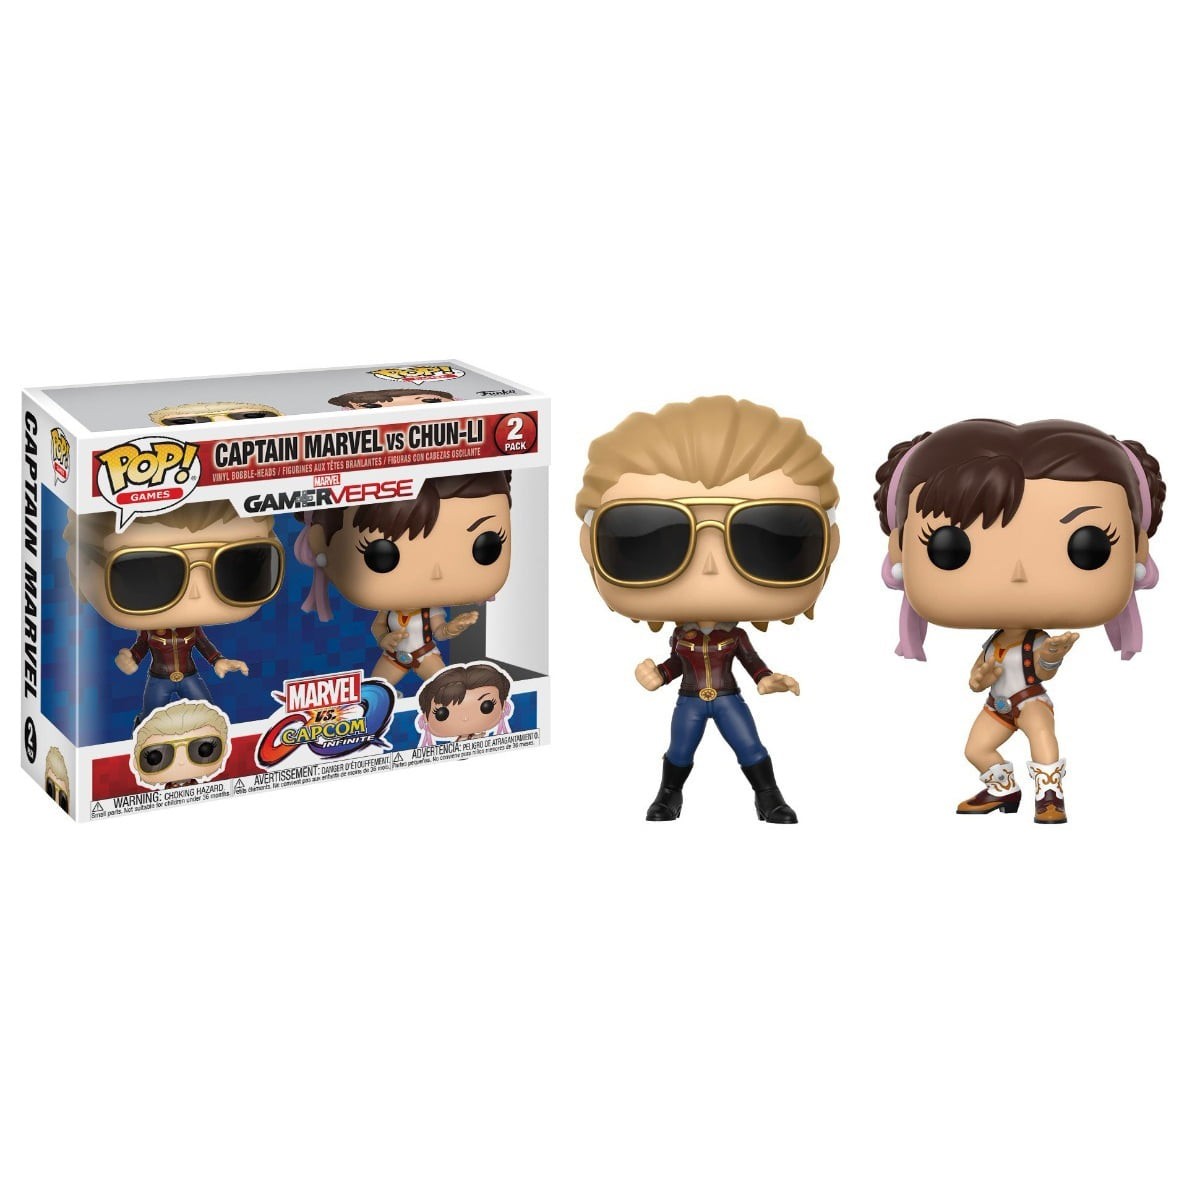 POP! CAPITÃO MARVEL VS CHUN-LI